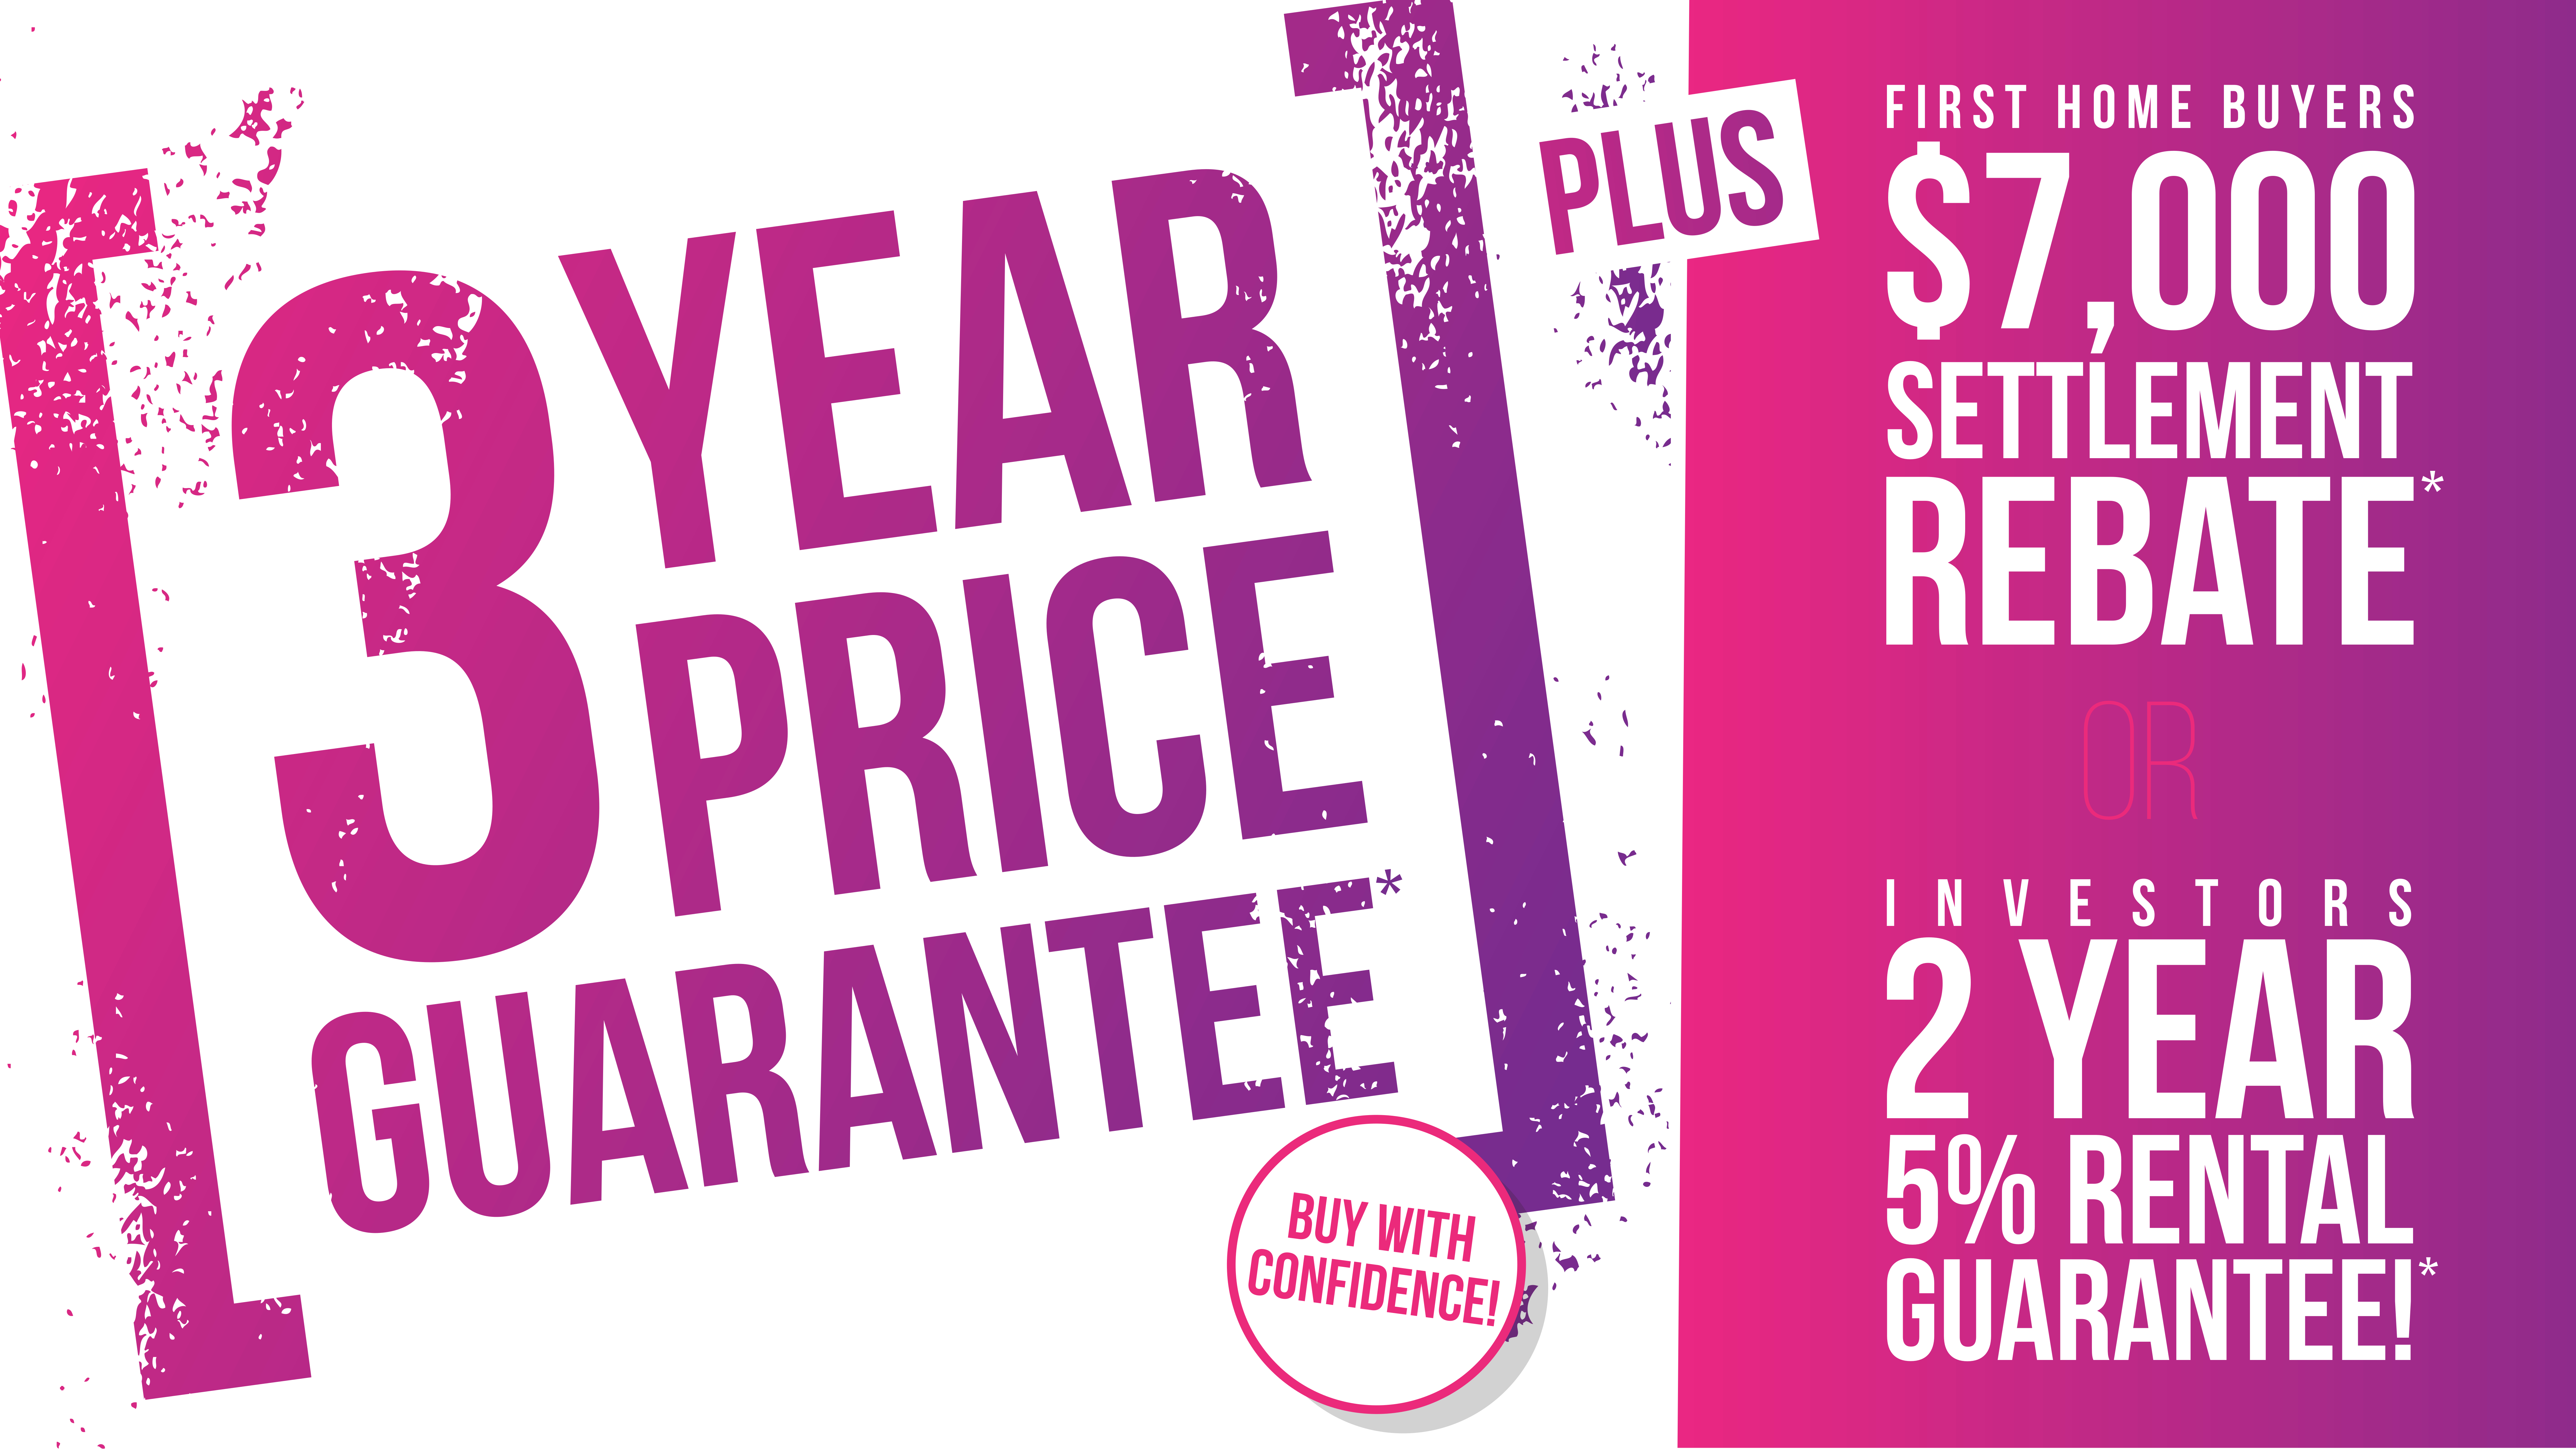 Cockburn Living - 3 Year Price Guarantee*